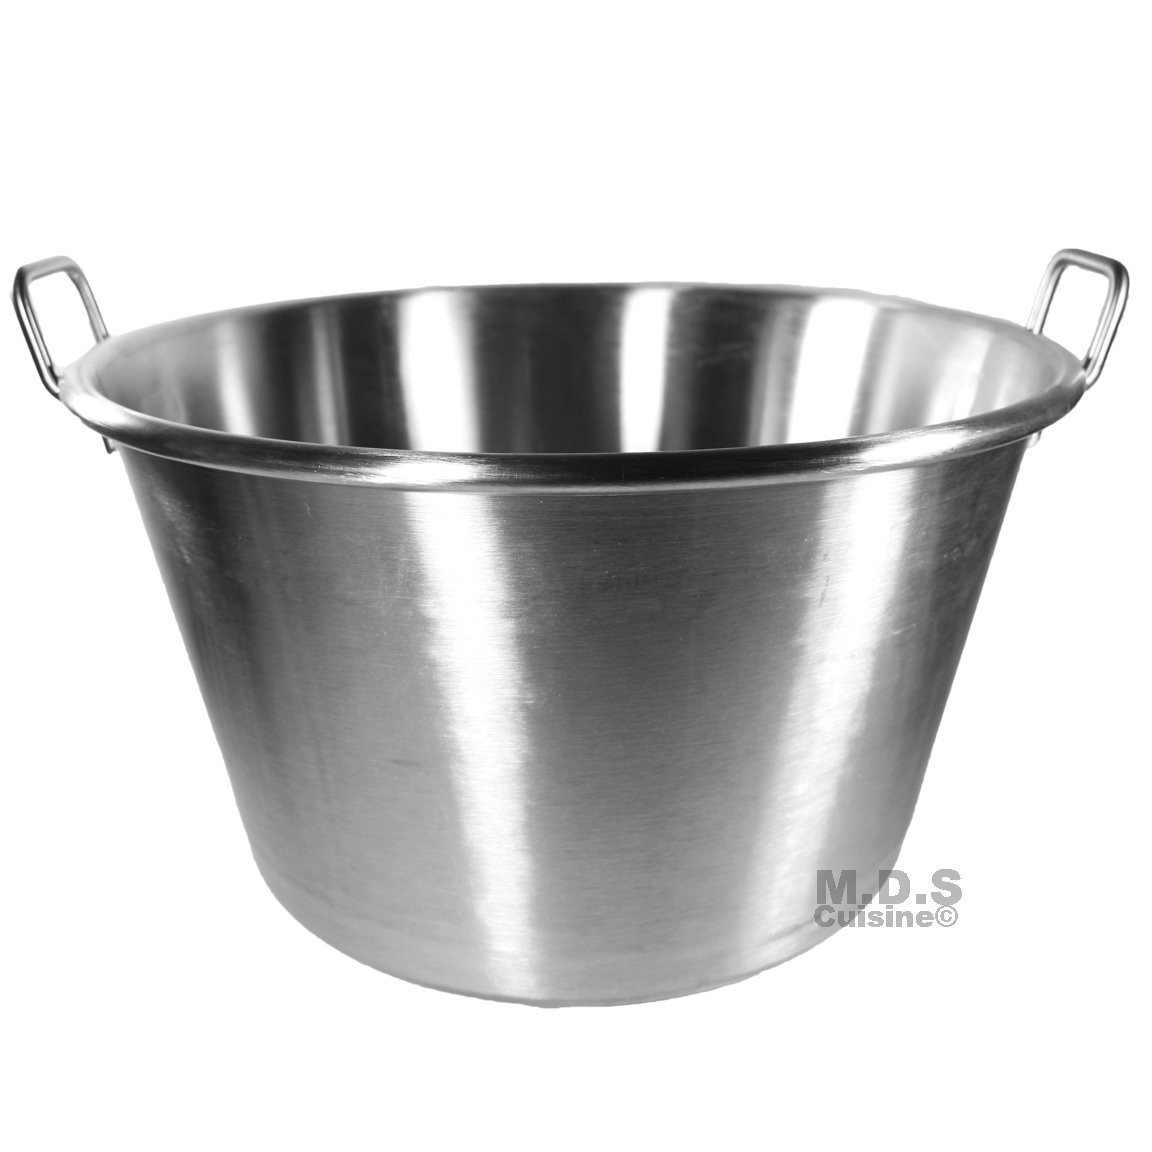 Large Cazo Stainless Steel 21'' Caso para Carnitas Gas Heavy Duty Wok Acero Inoxidable by M.D.S Cuisine Cookwares (Image #2)